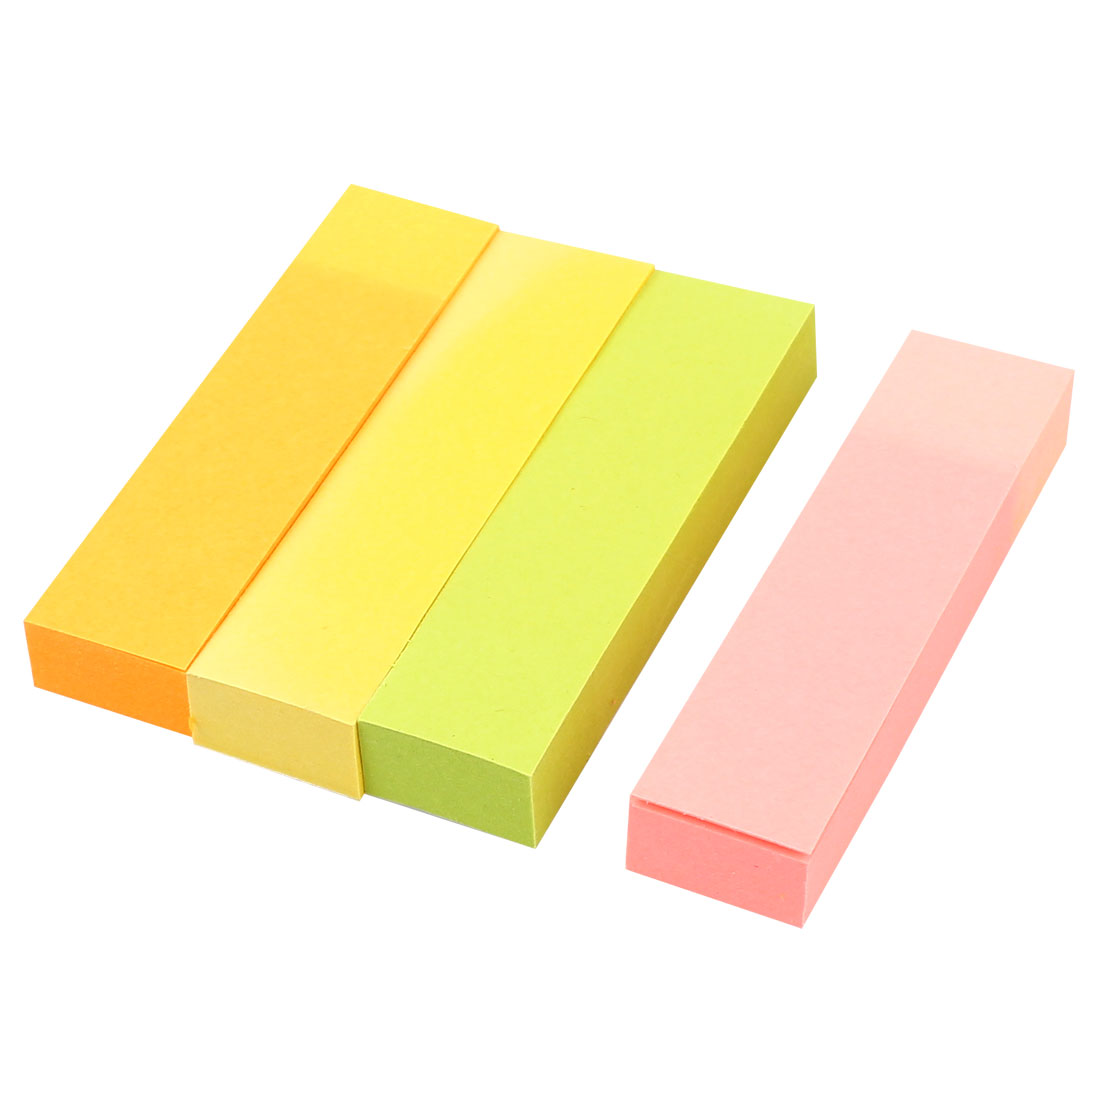 4 Pieces Self Adhesive Dairy Memo Pad Sticky Notes Yellow Pink Orange Green